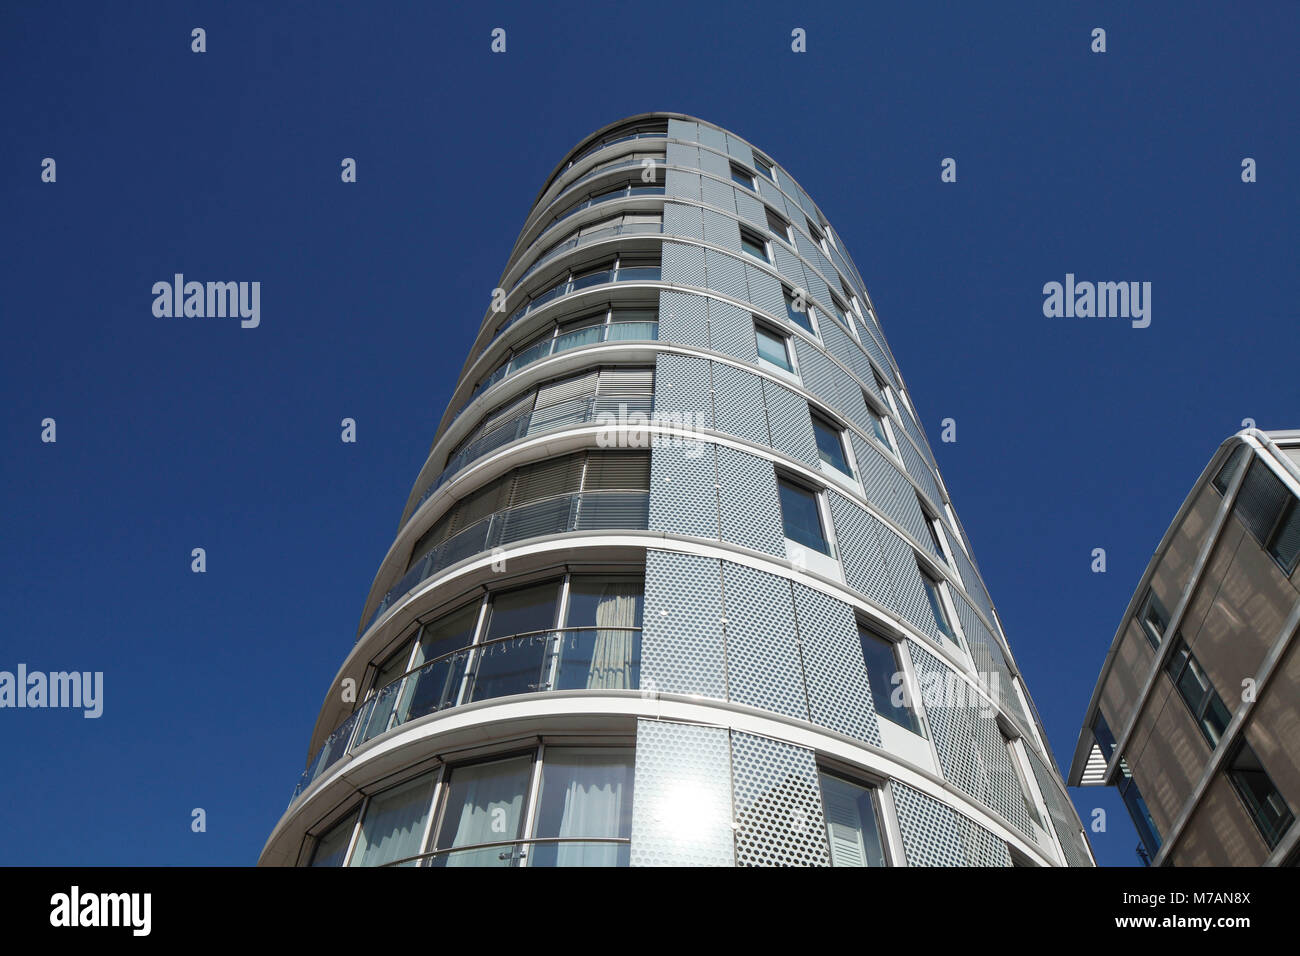 Round residential building, high rise, glass construction, harbour city, Hamburg, Germany, Europe - Stock Image